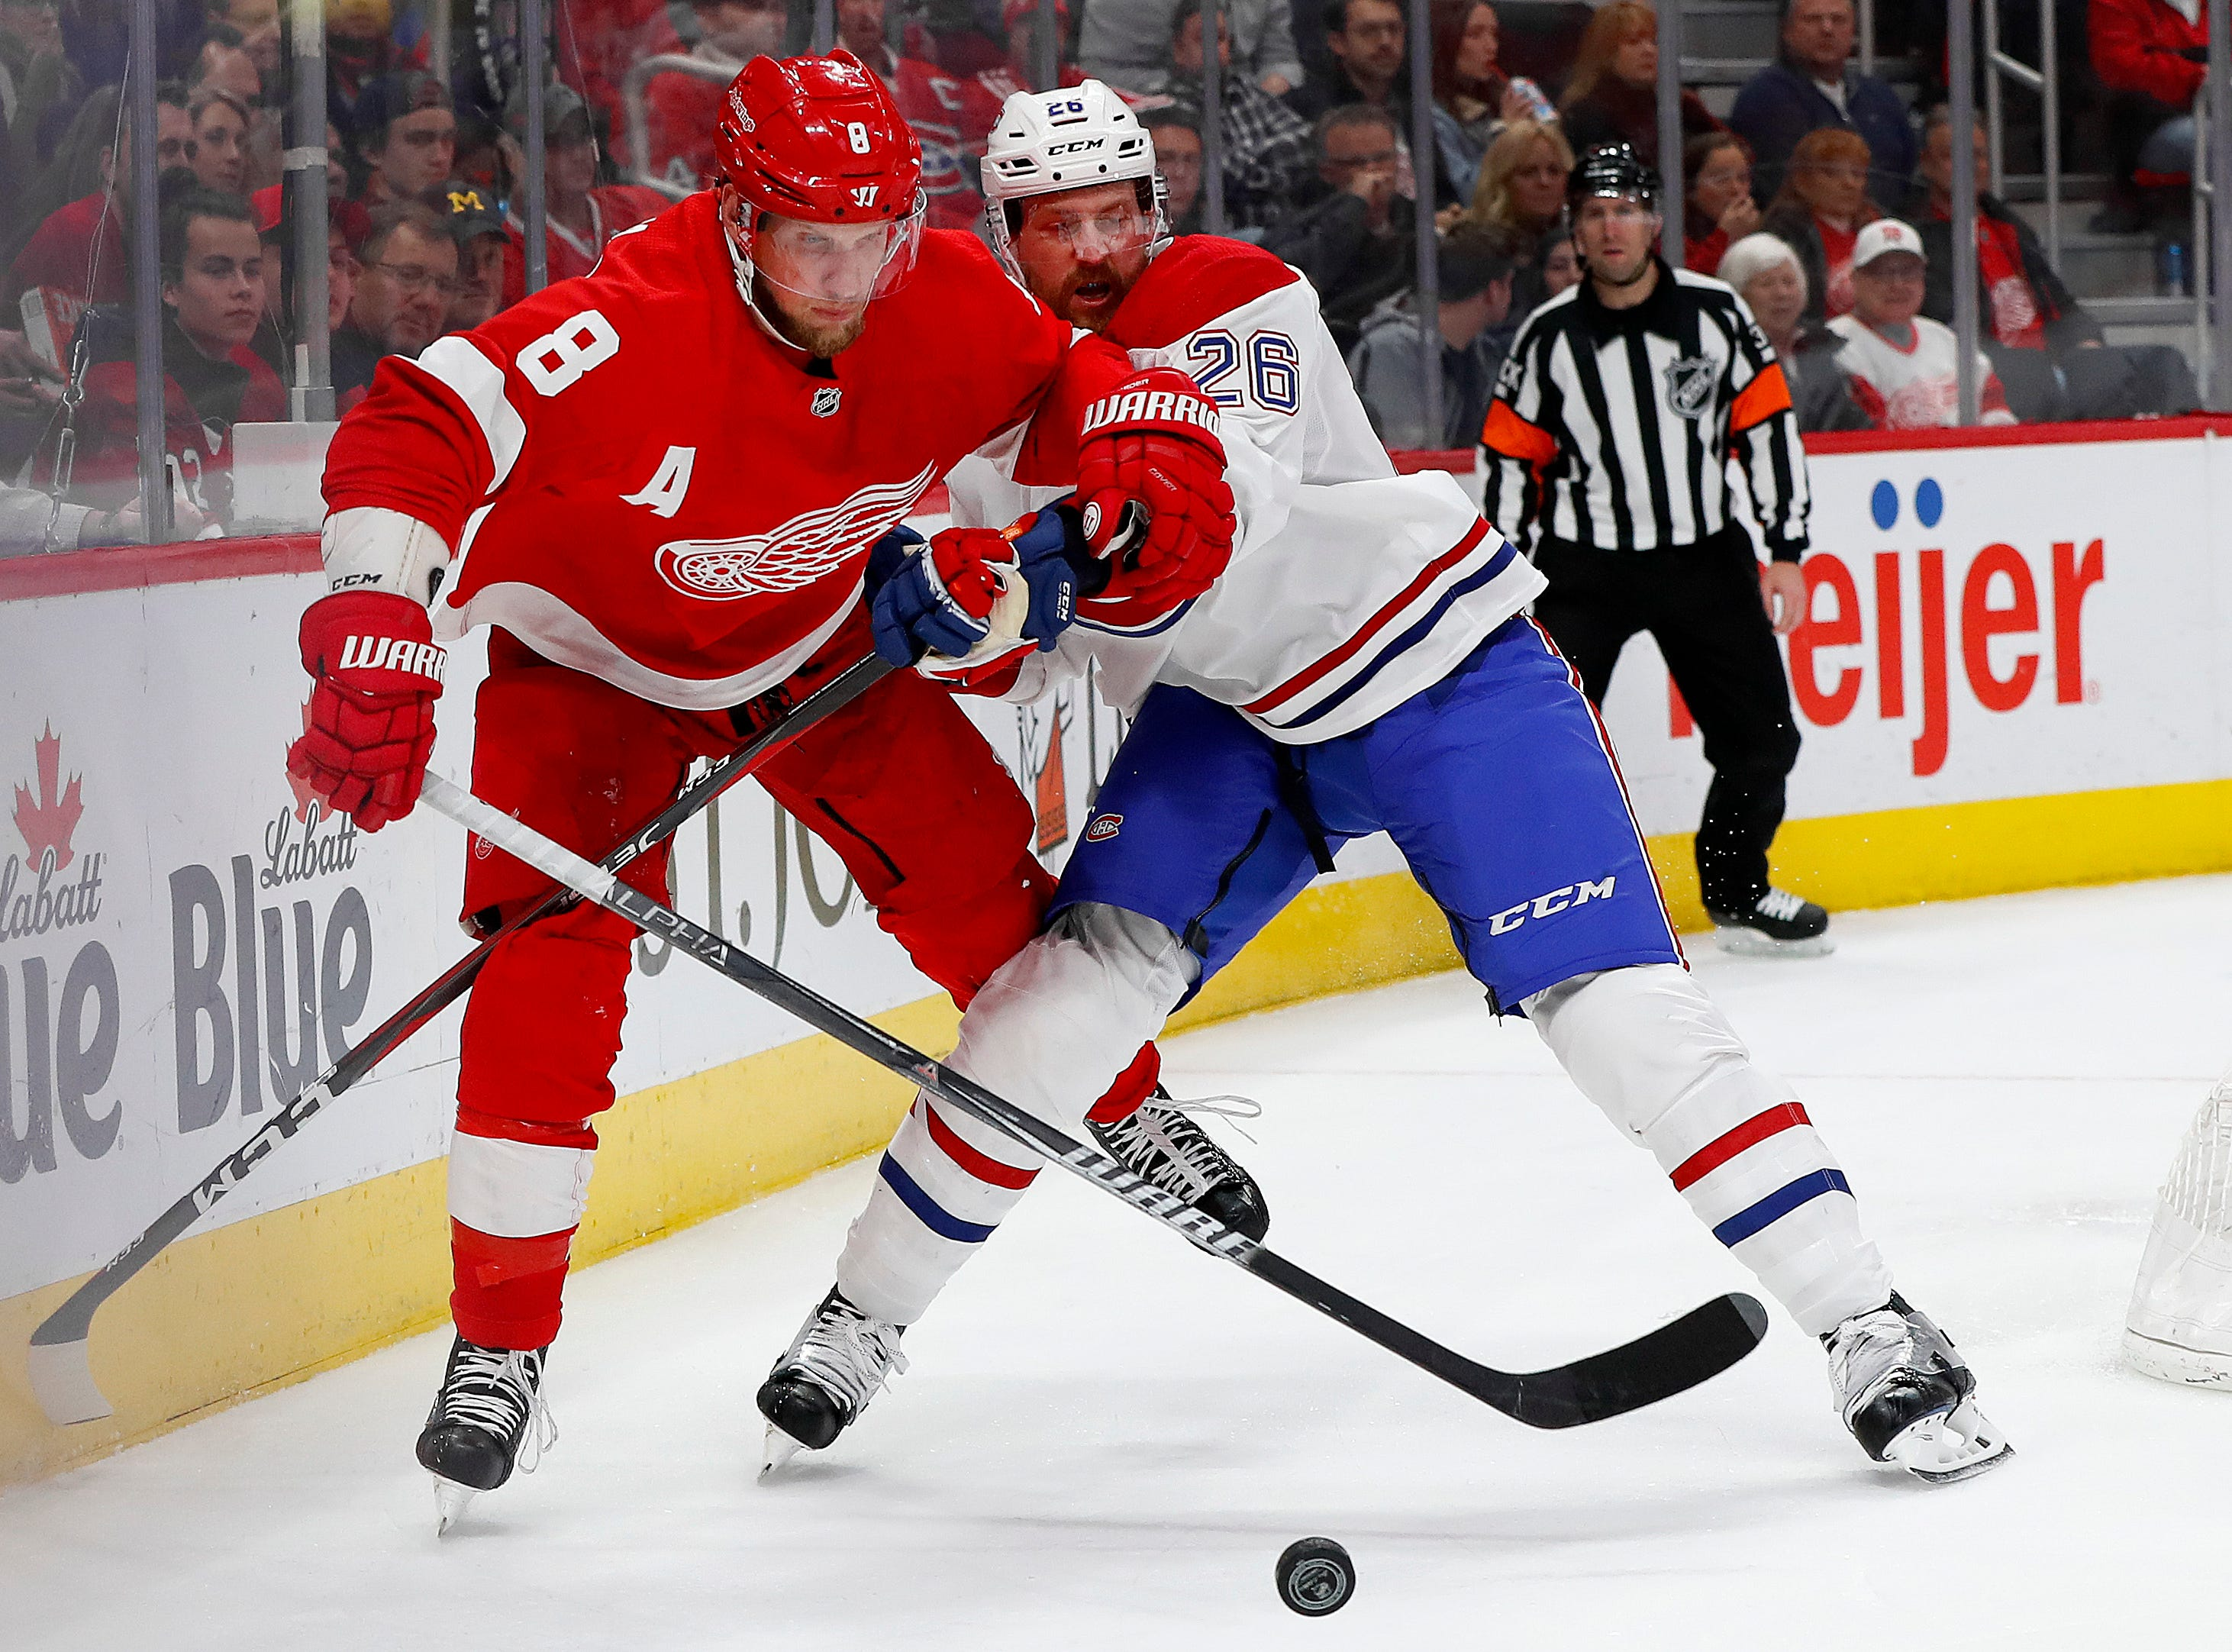 Detroit Red Wings left wing Justin Abdelkader (8) and Montreal Canadiens defenseman Jeff Petry (26) battle for the puck in the second period.